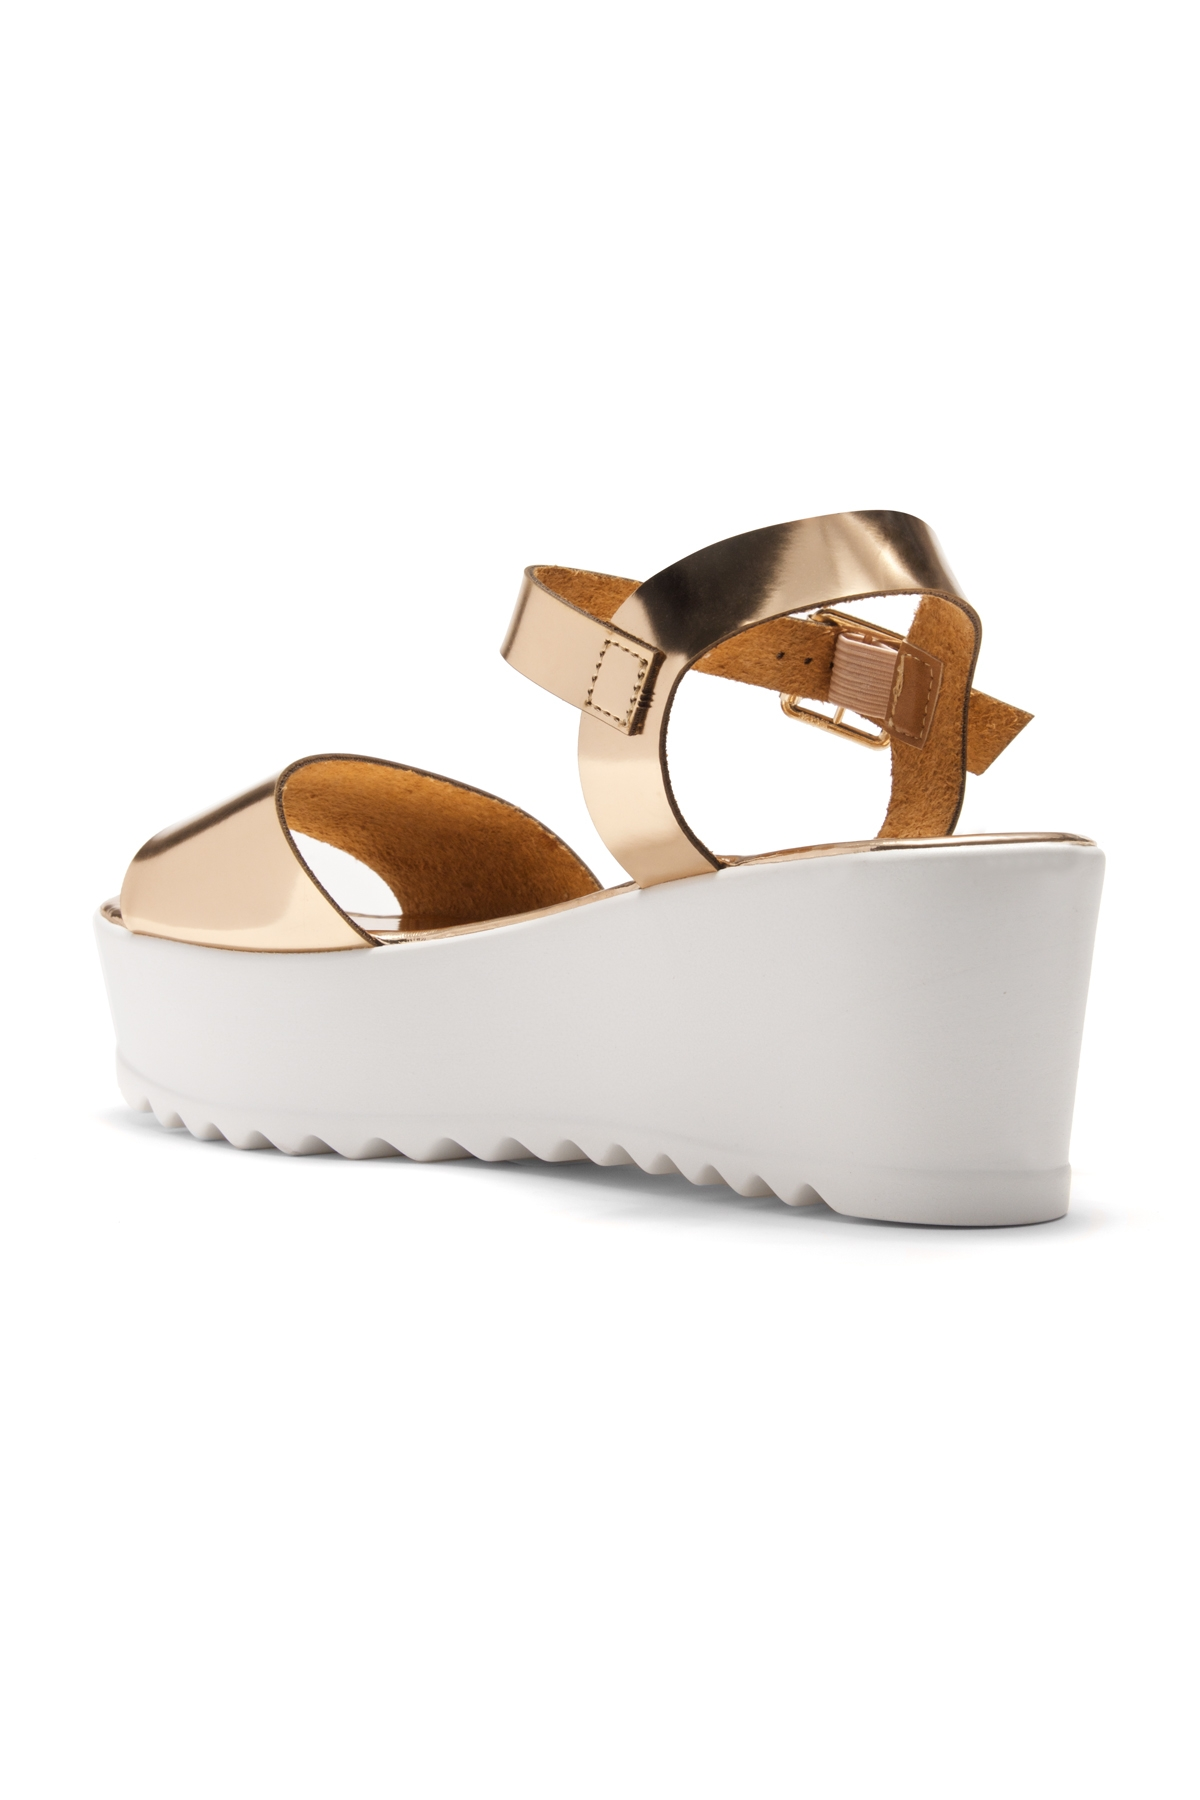 298d7a0f165 HerStyle Women s Jolliee Open Toe Ankle Strap platform Wedge (Rose Gold)